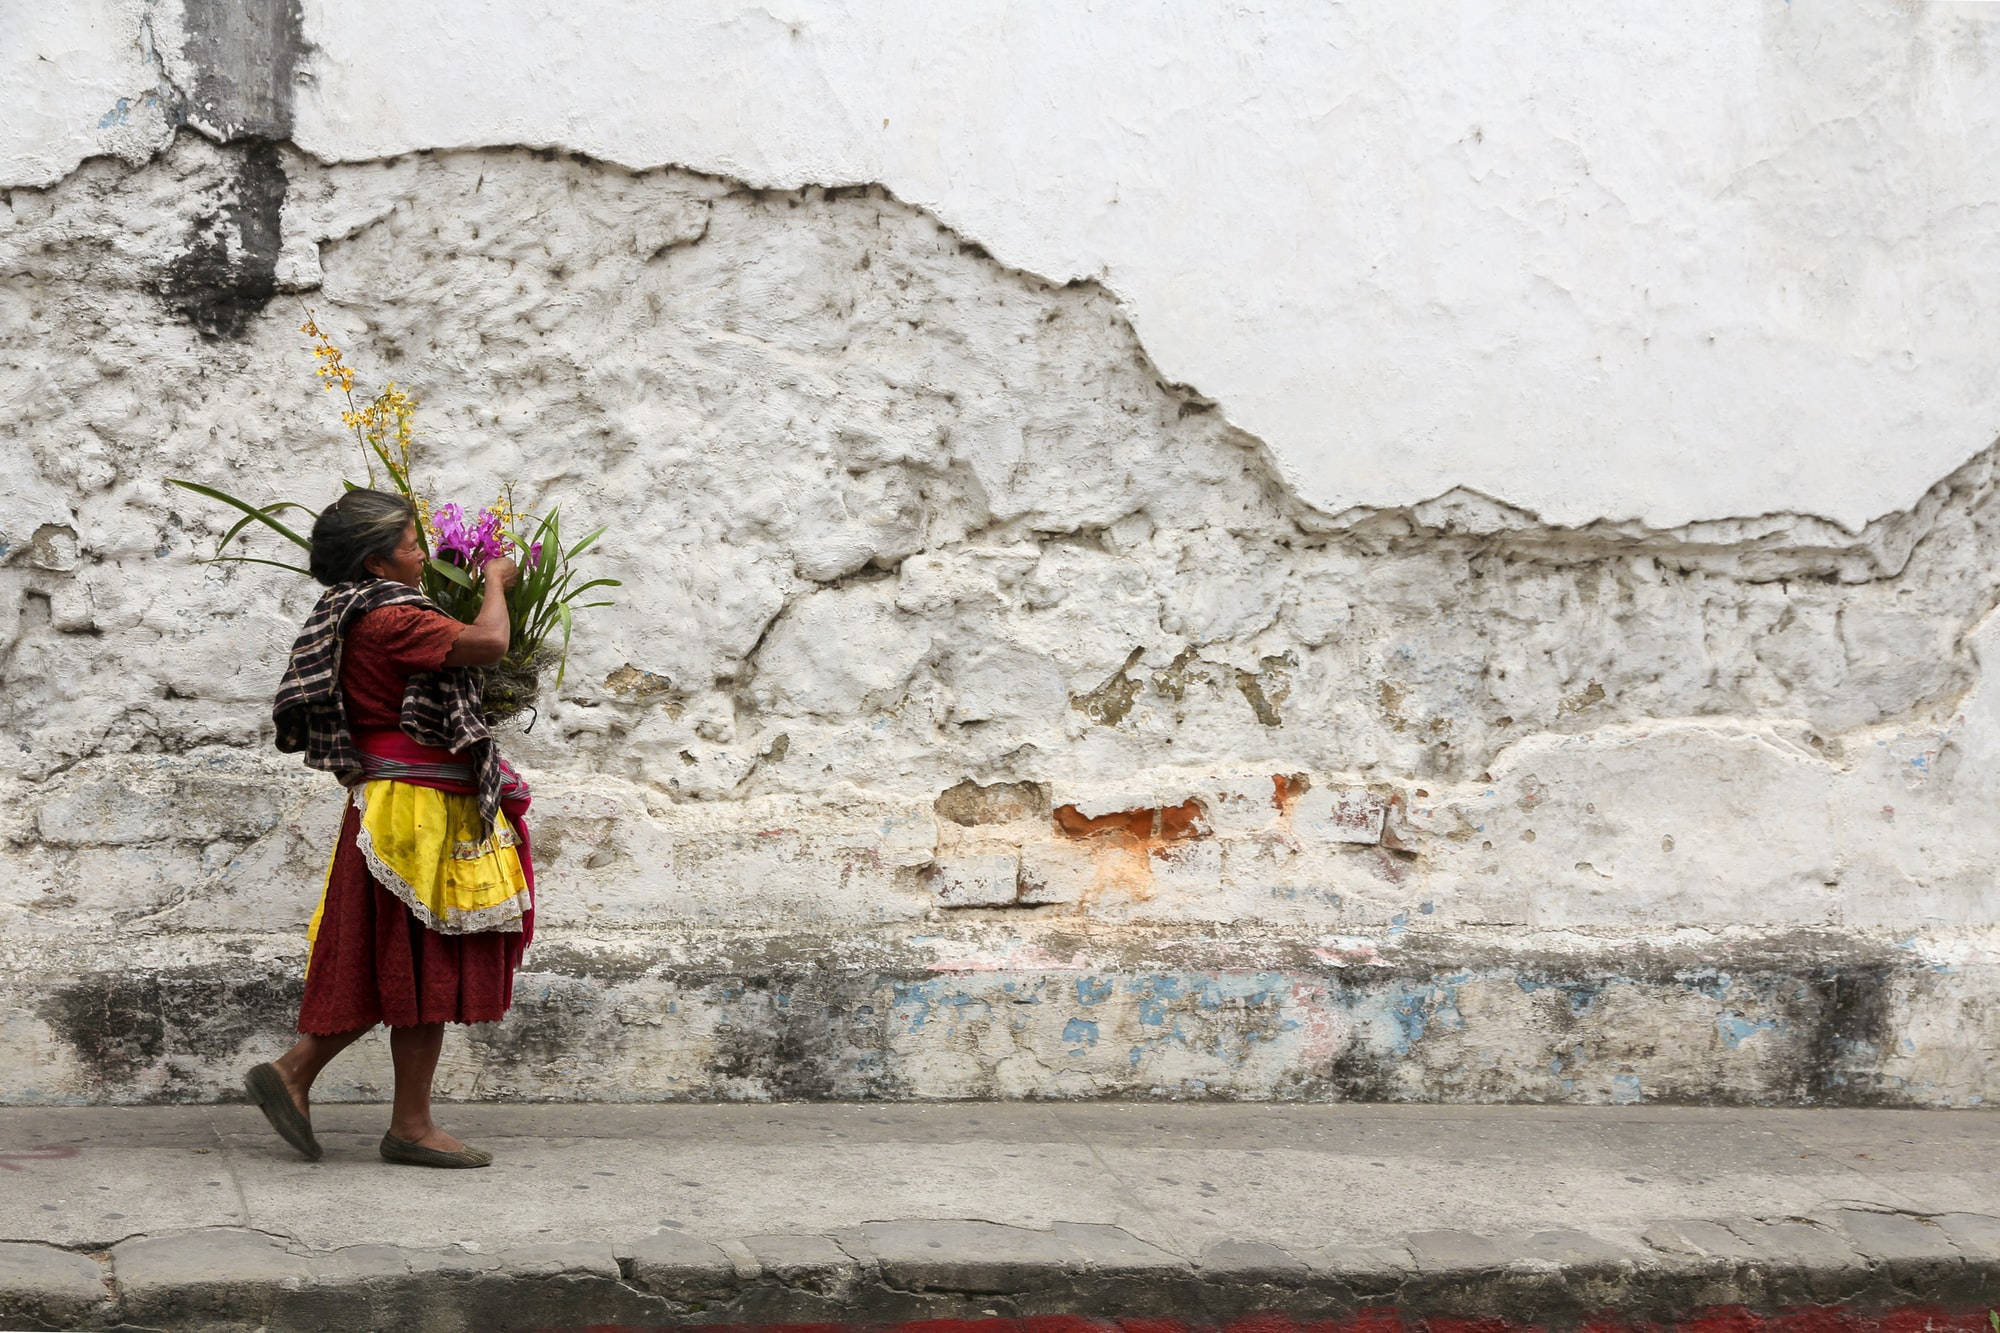 A woman carries a basket of flowers next to the cobblestone streets and crumbling walls of Antigua, Guatemala.